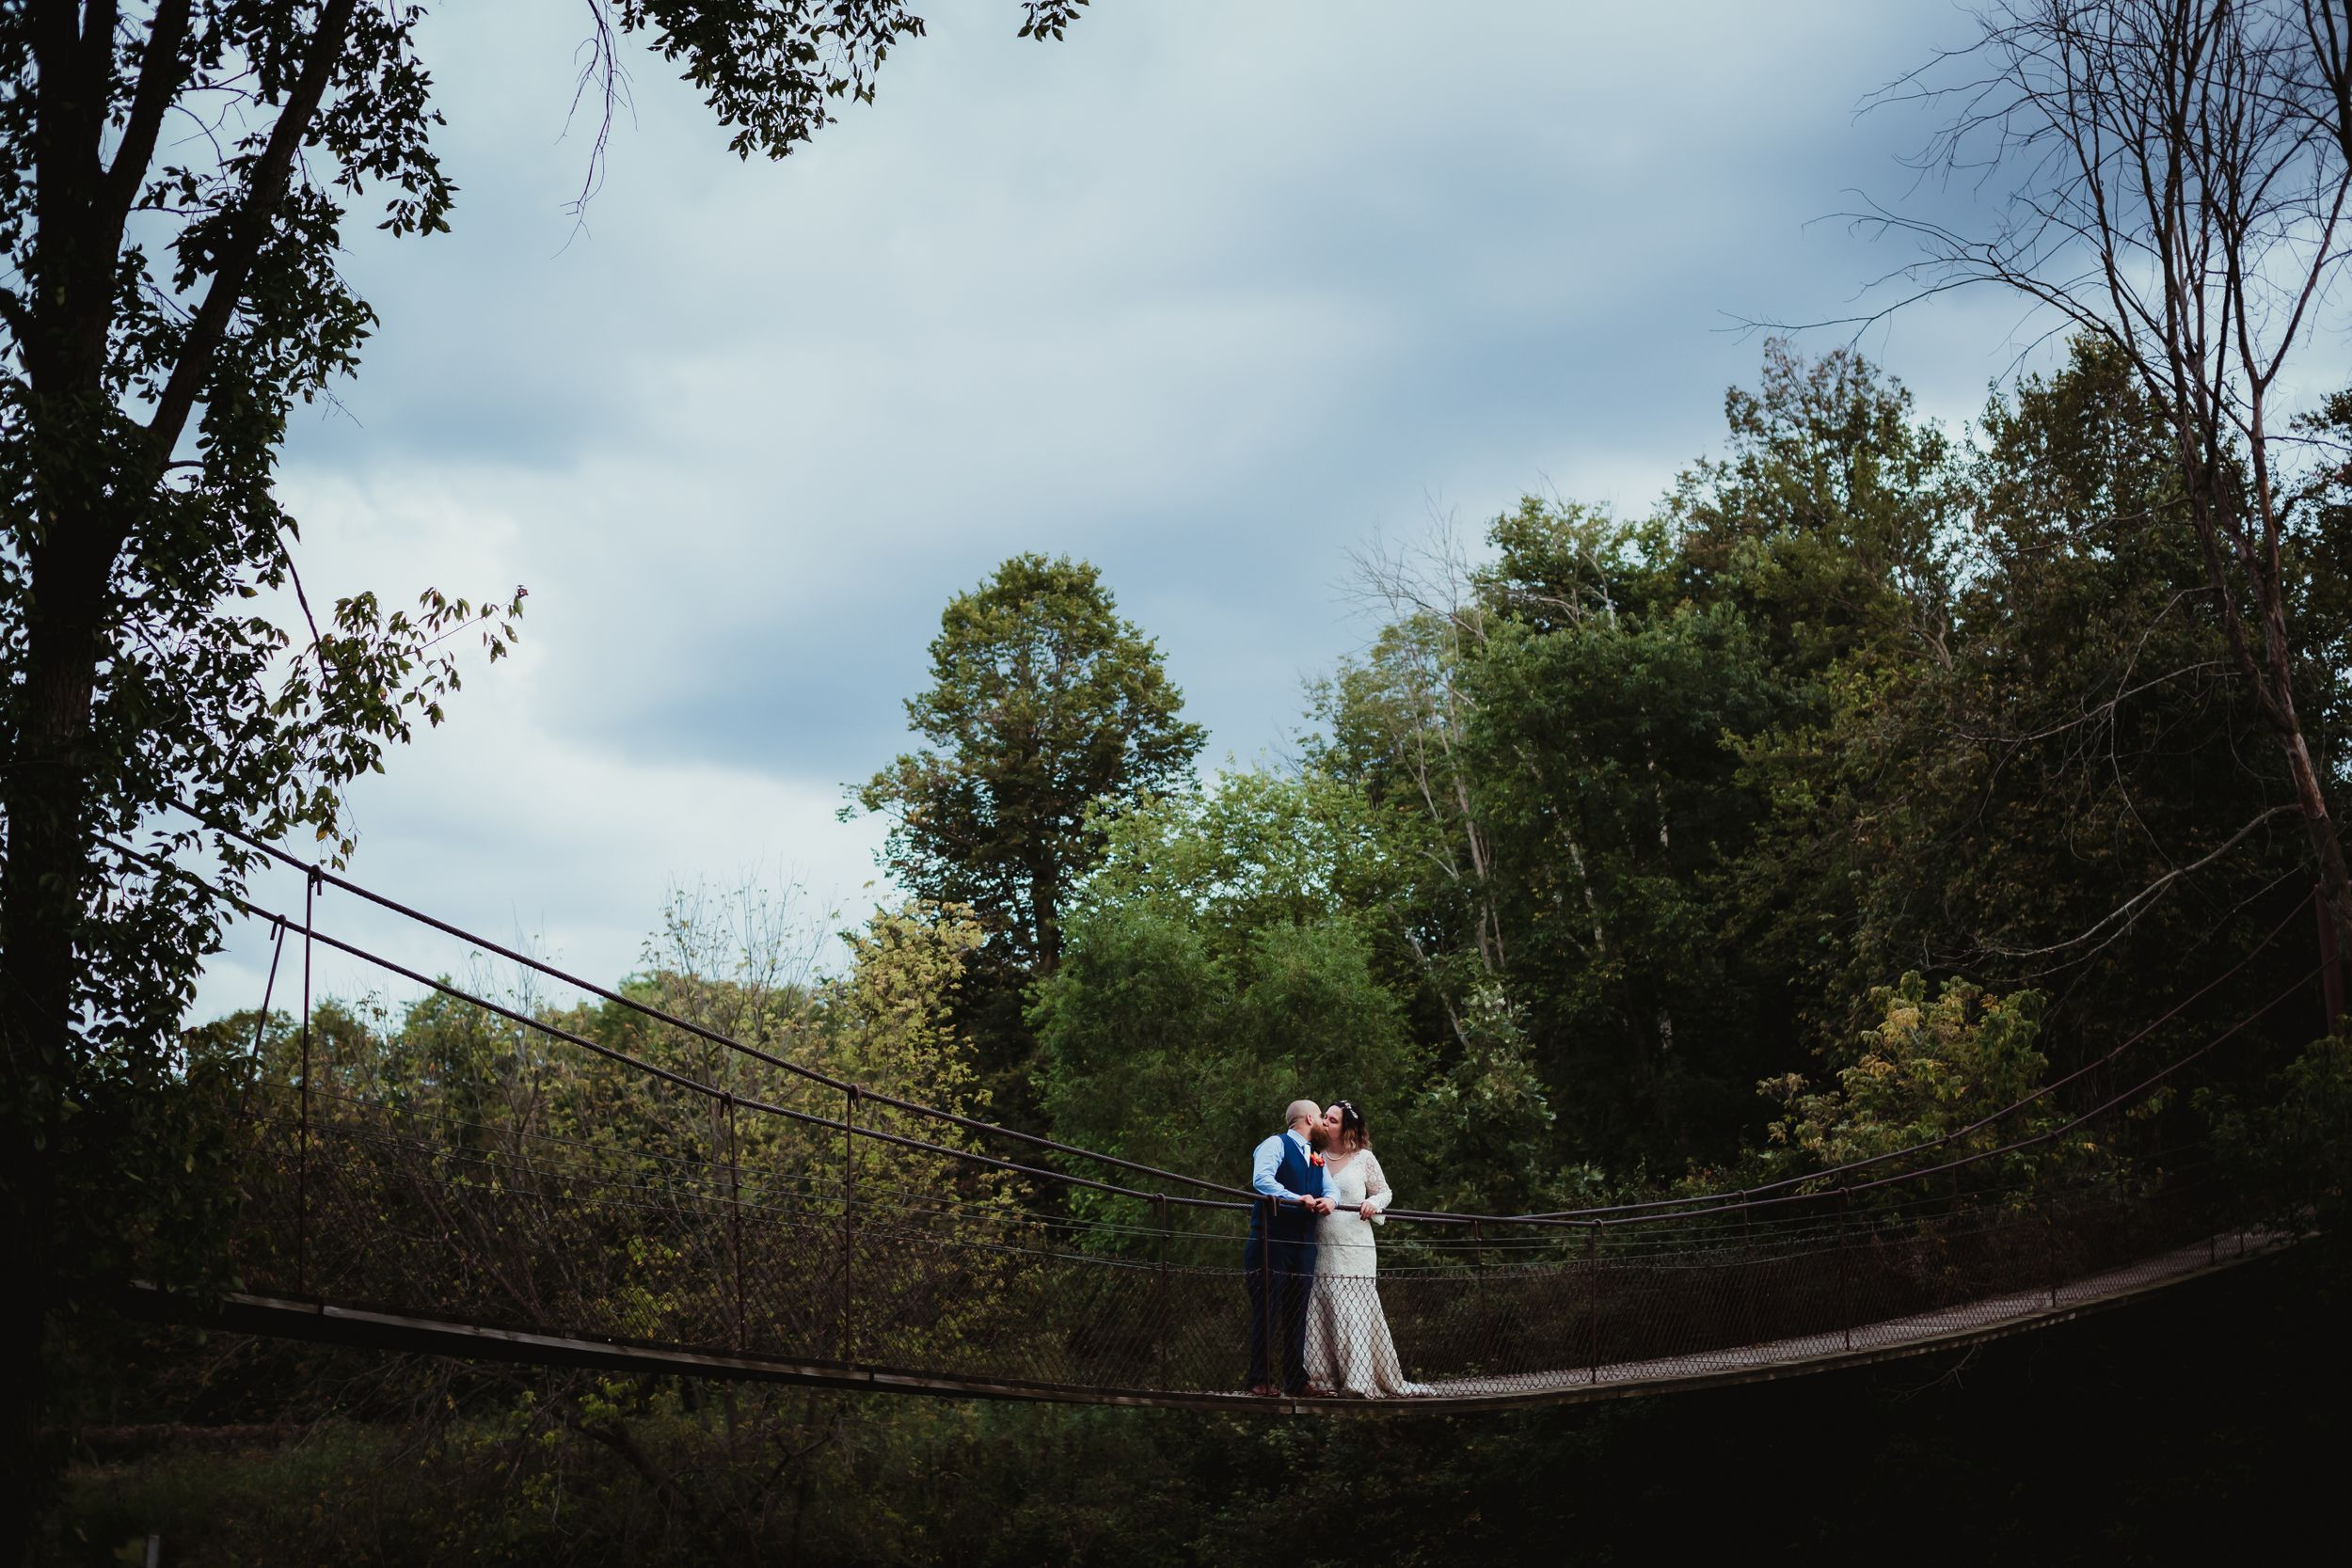 Man and woman in wedding attire kissing in the middle of a swinging cable rope bridge.